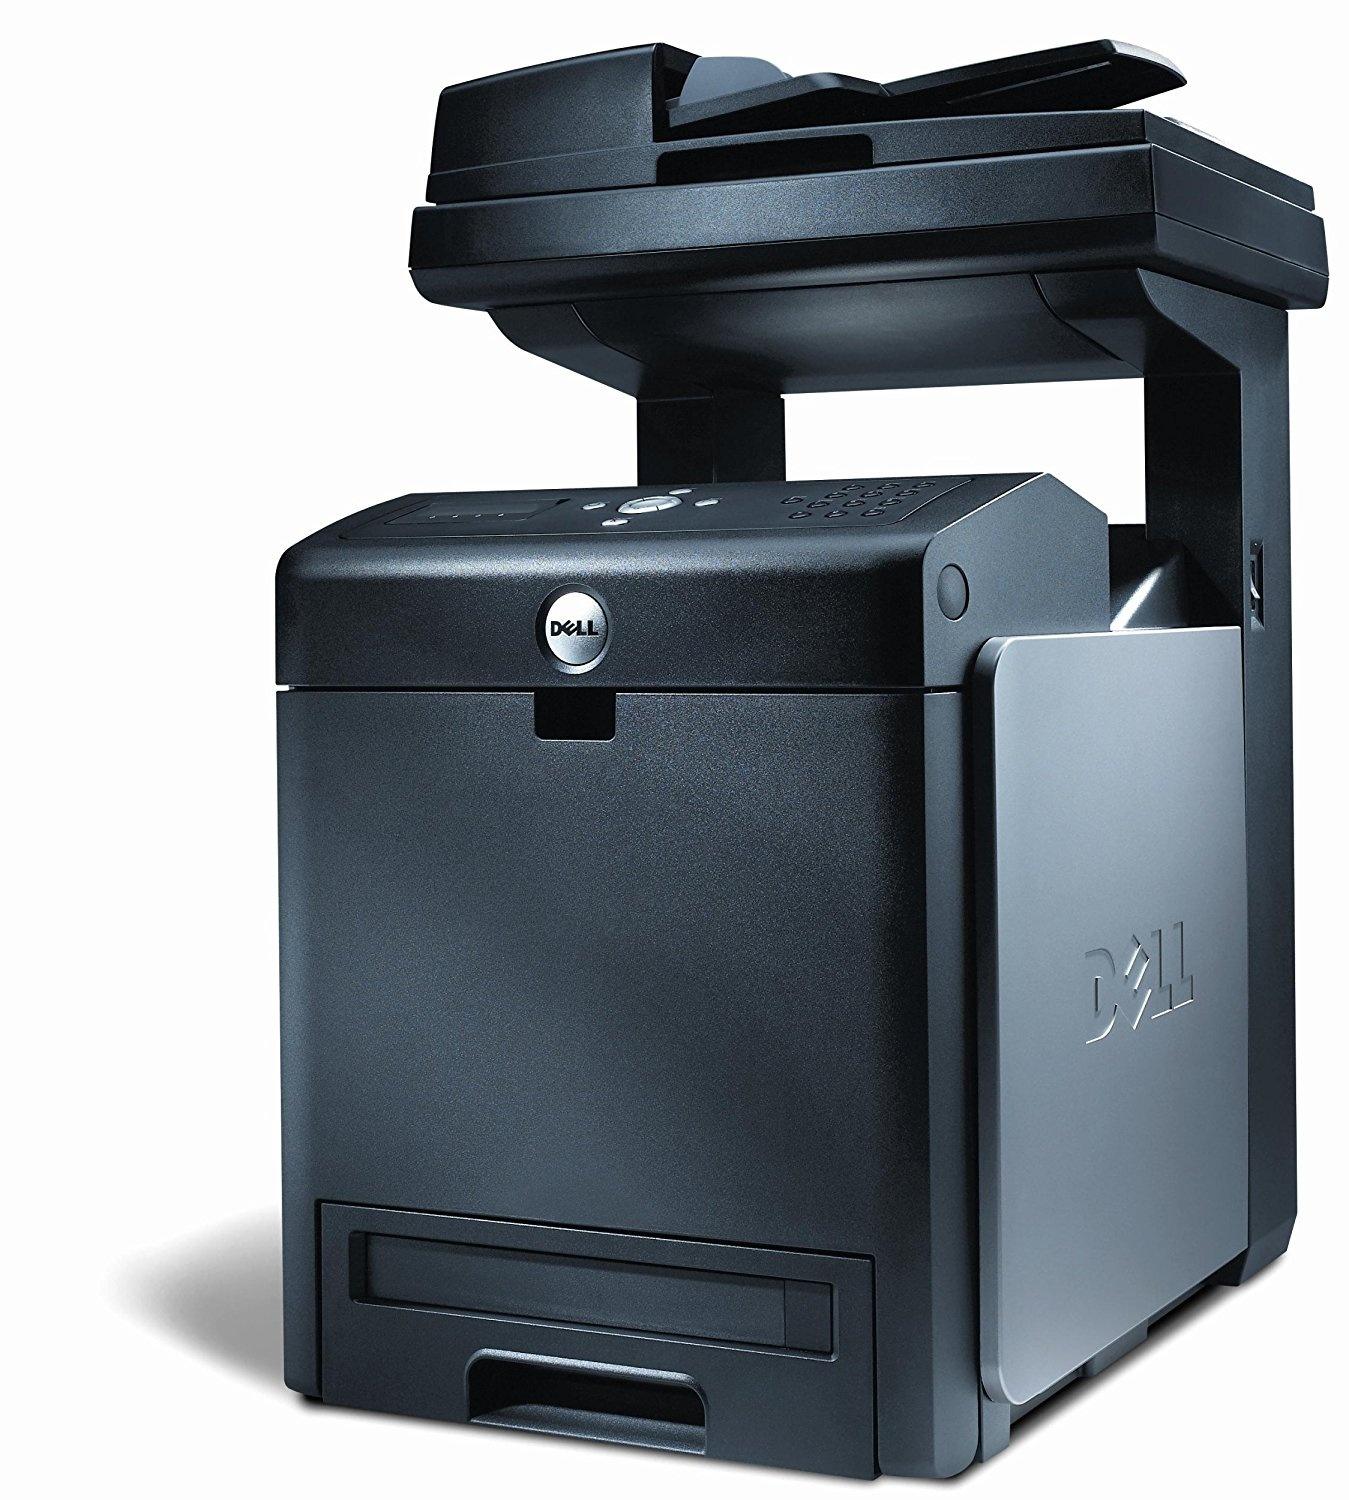 dell 3115cn color laser printer service repair manual rh sellfy com Dell 3115Cn Printer Drivers Dell MFP Laser 3115Cn PCL6